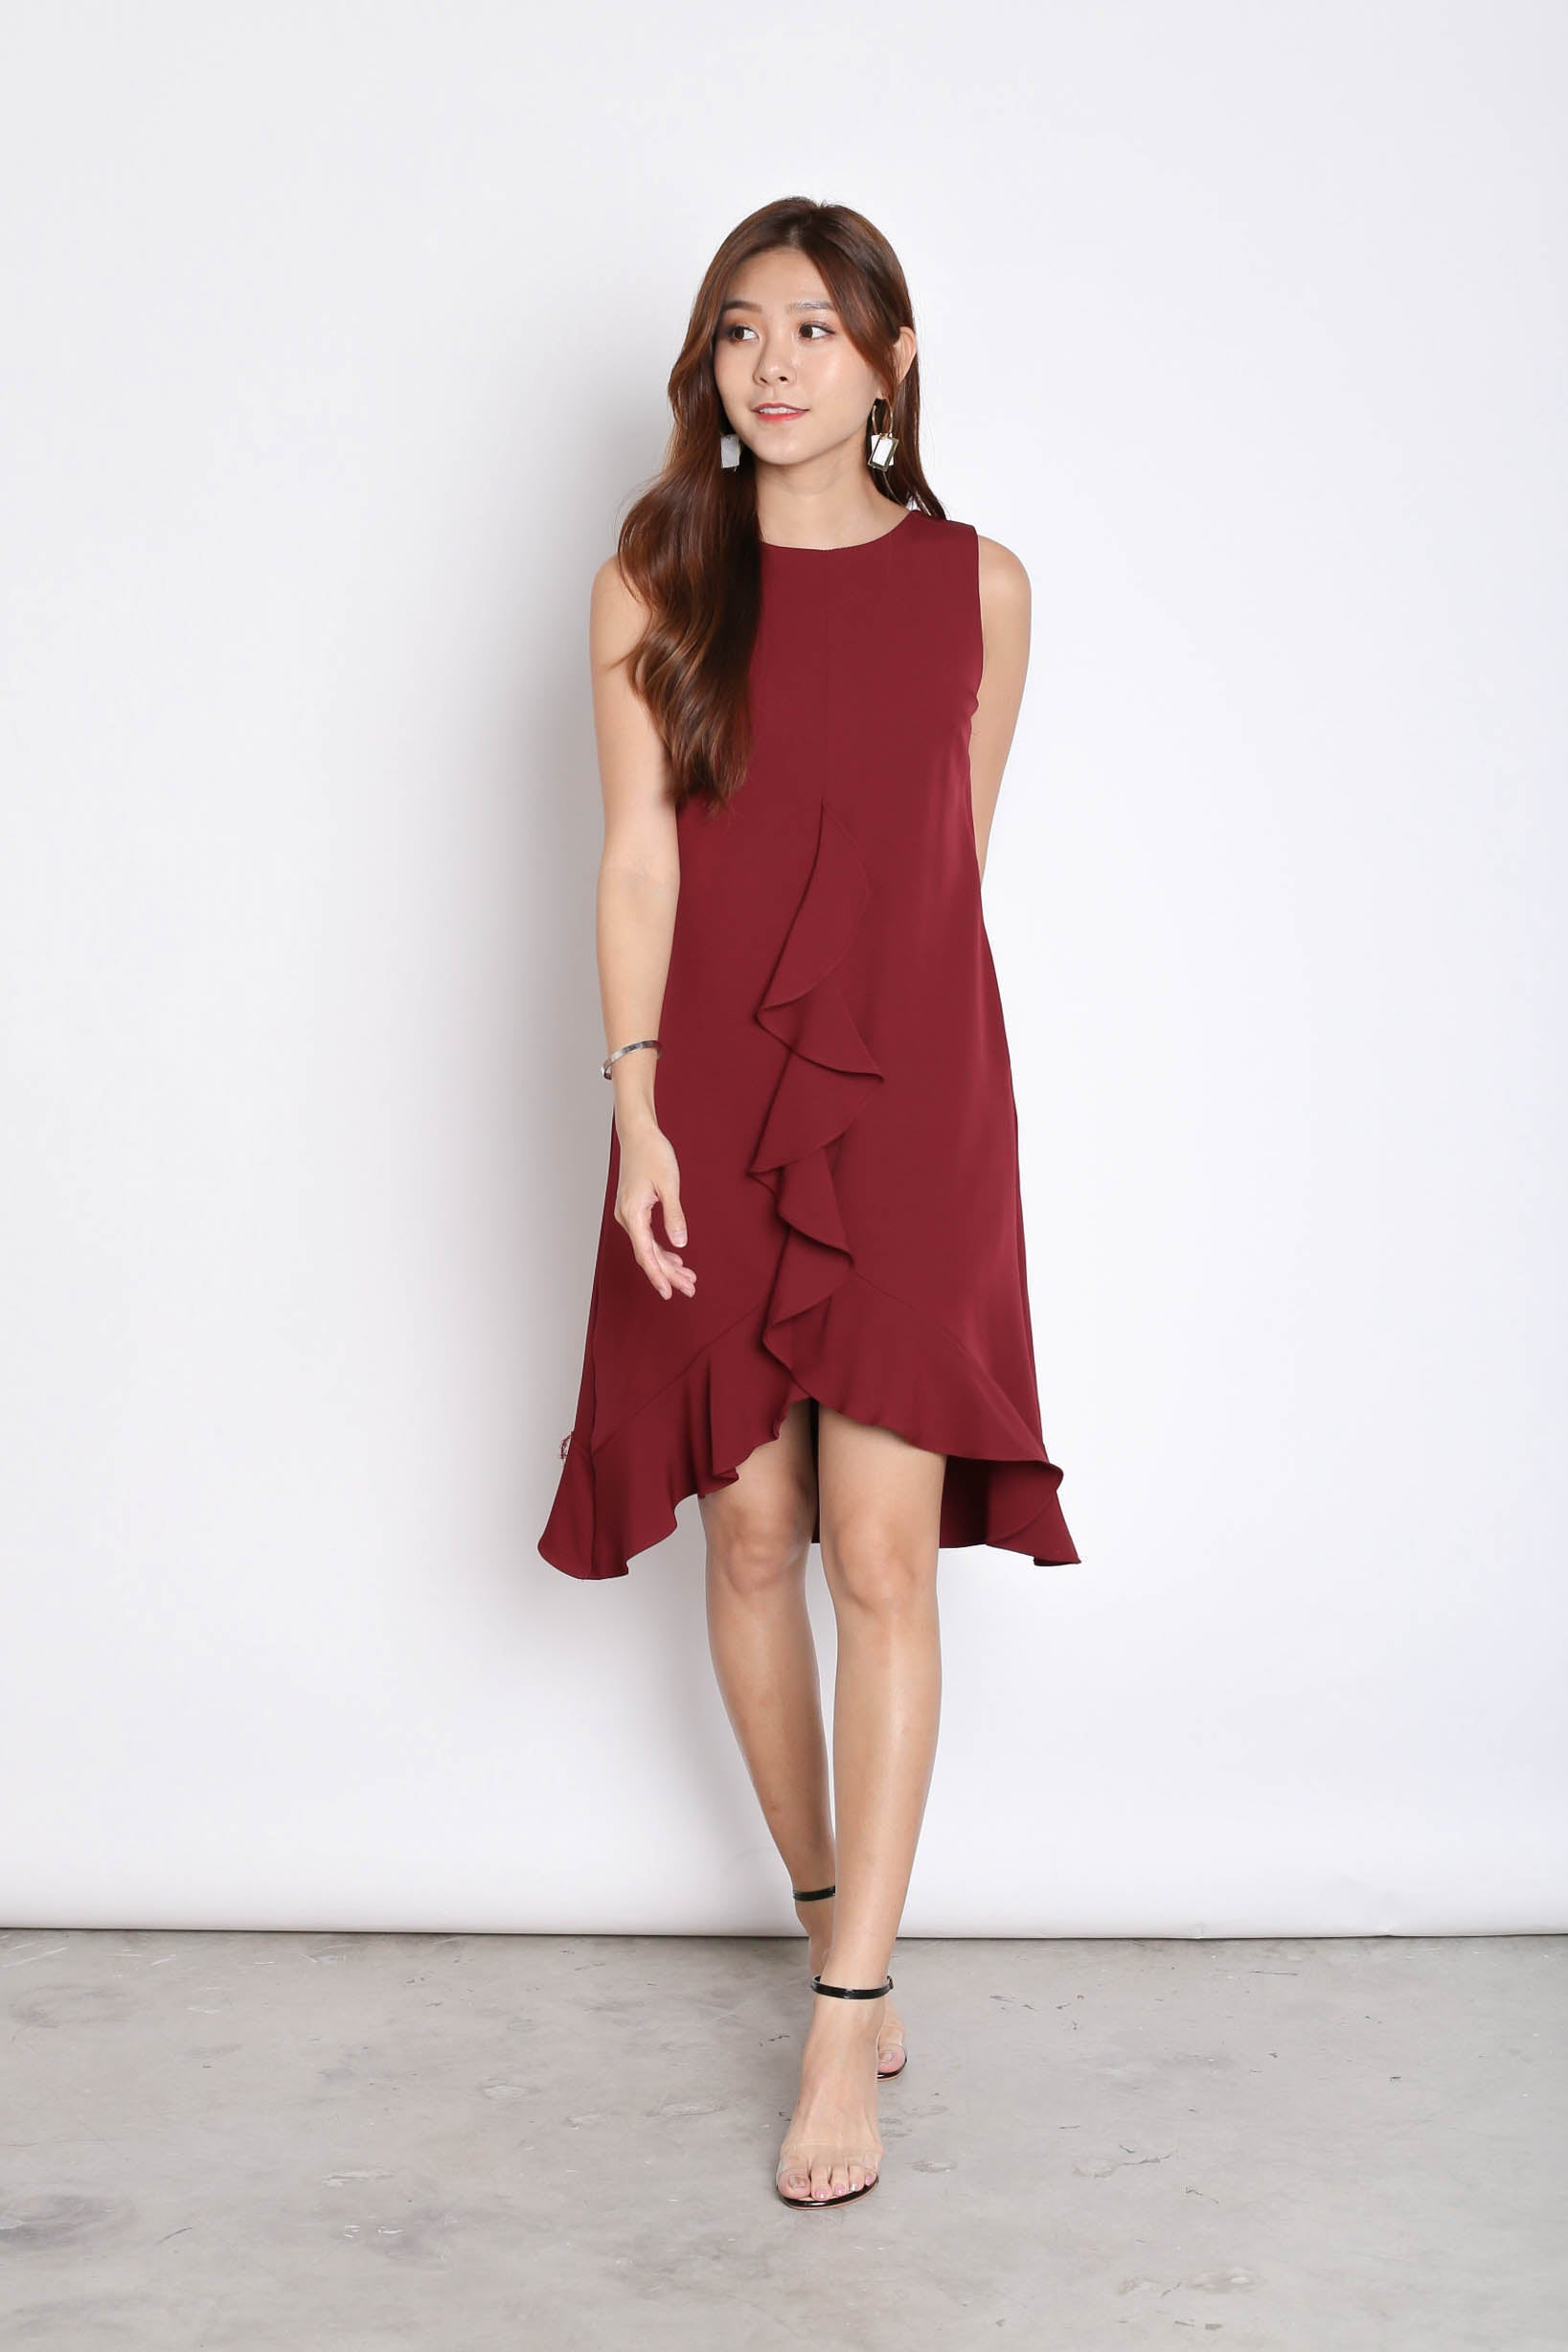 *TPZ* (PREMIUM) MYRLE RUFFLES SHIFT DRESS IN BURGUNDY